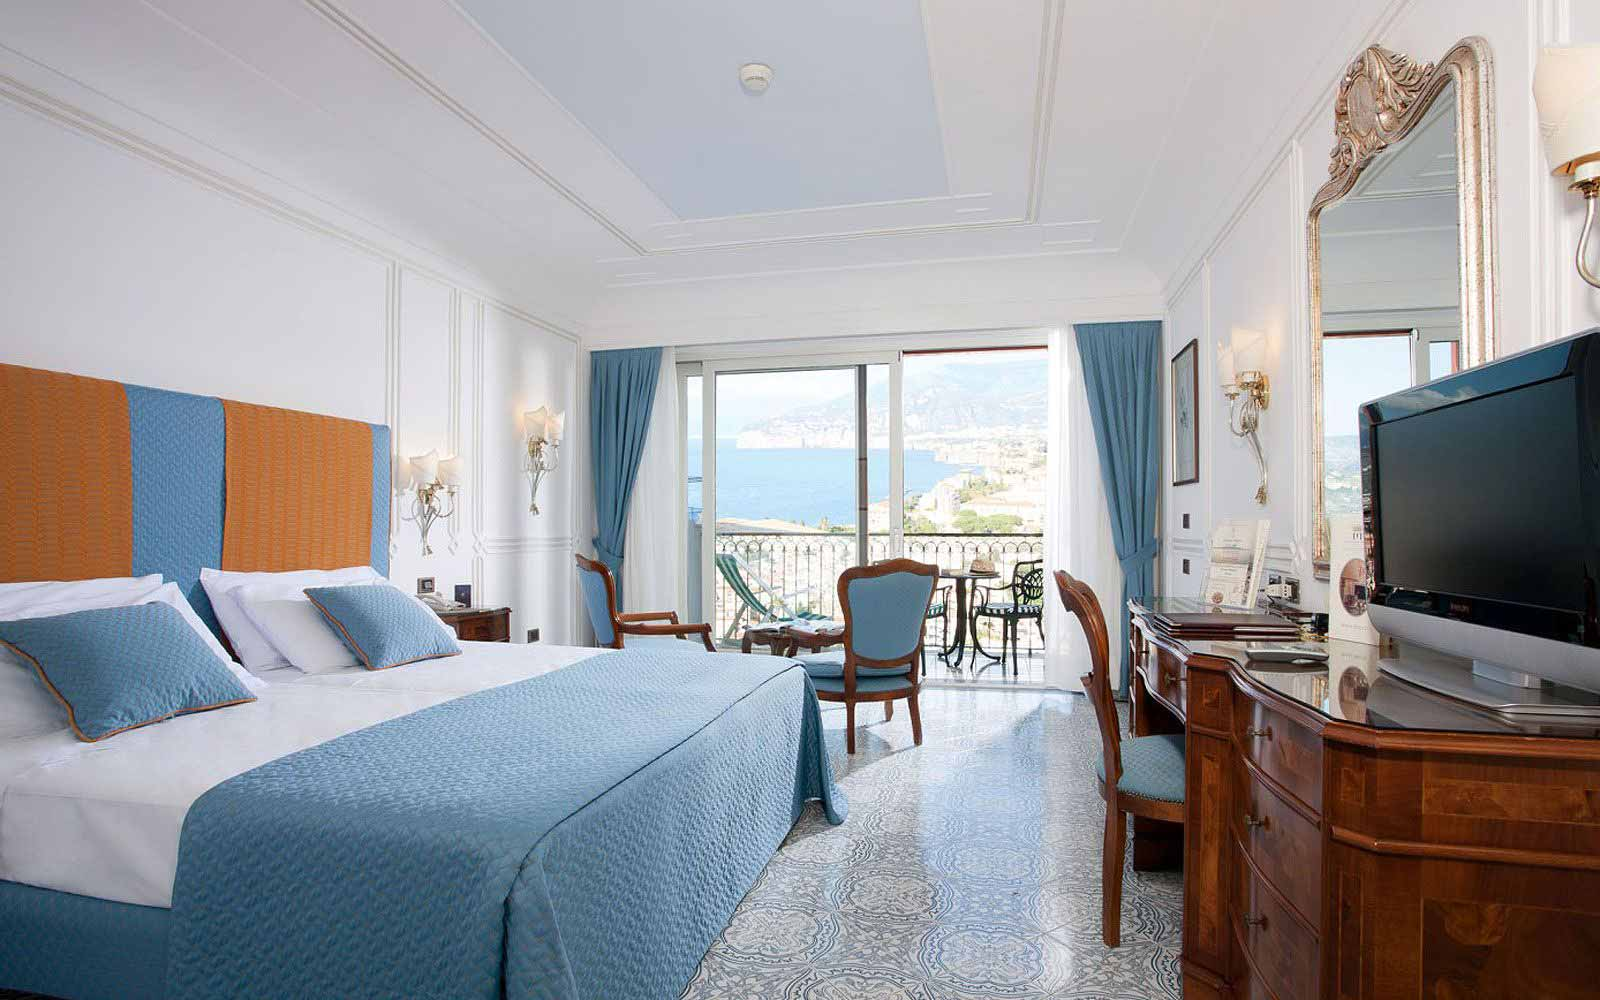 Deluxe Room with balcony and partial seaview at the Grand Hotel Capodimonte